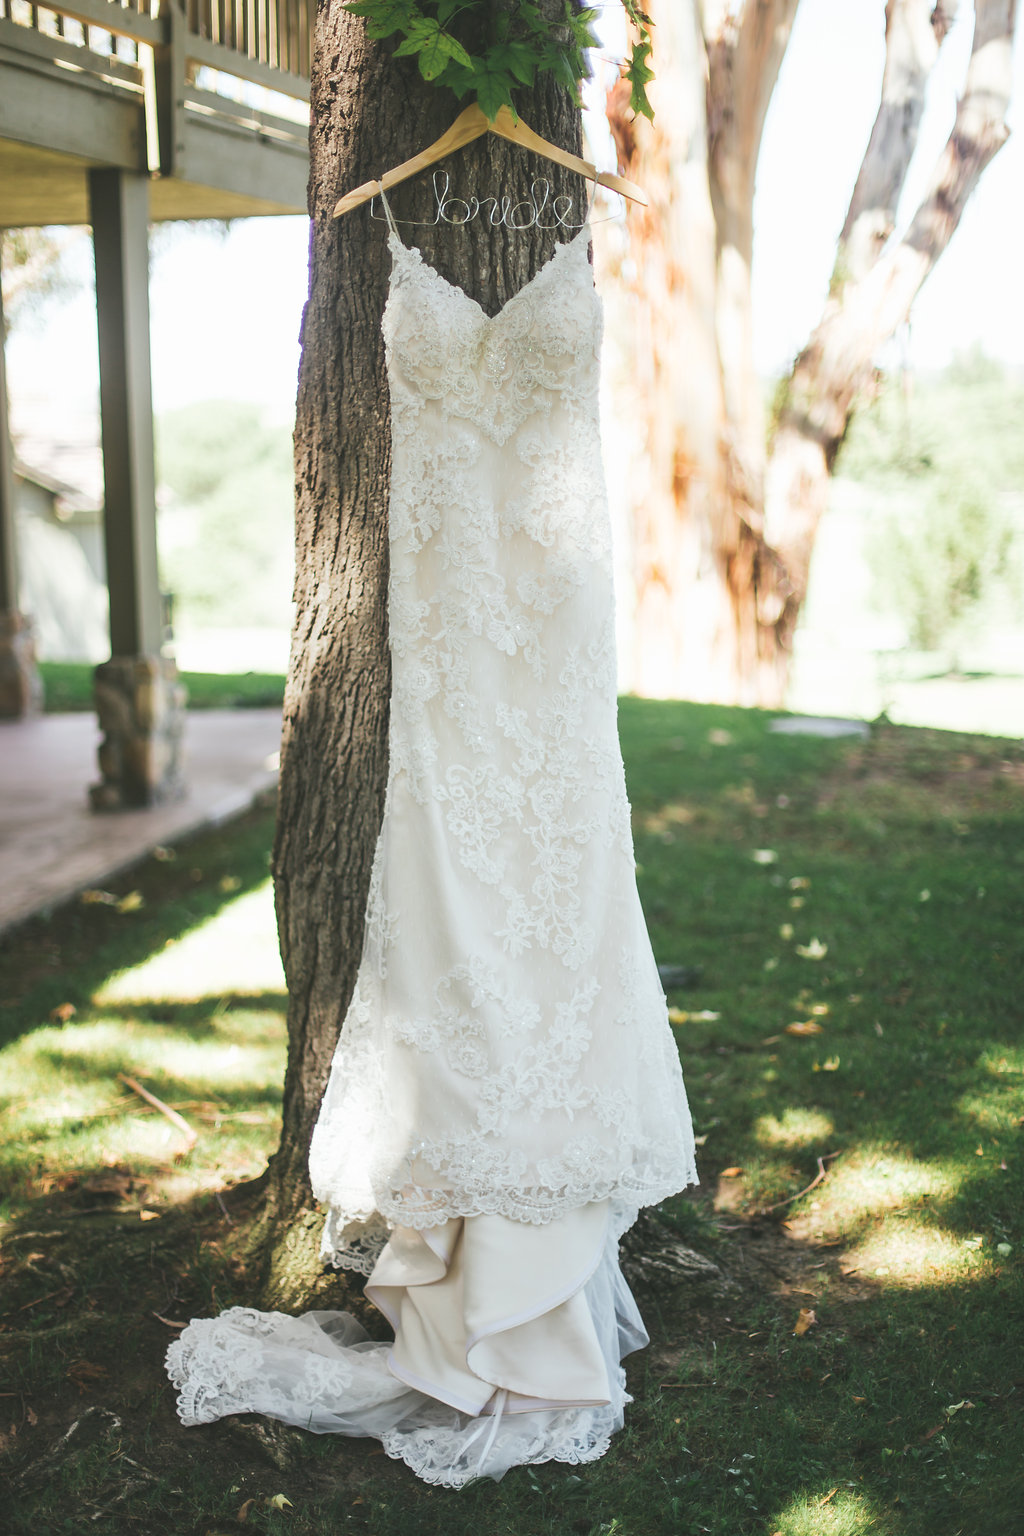 Wedding dress photographed by AndAnne.com